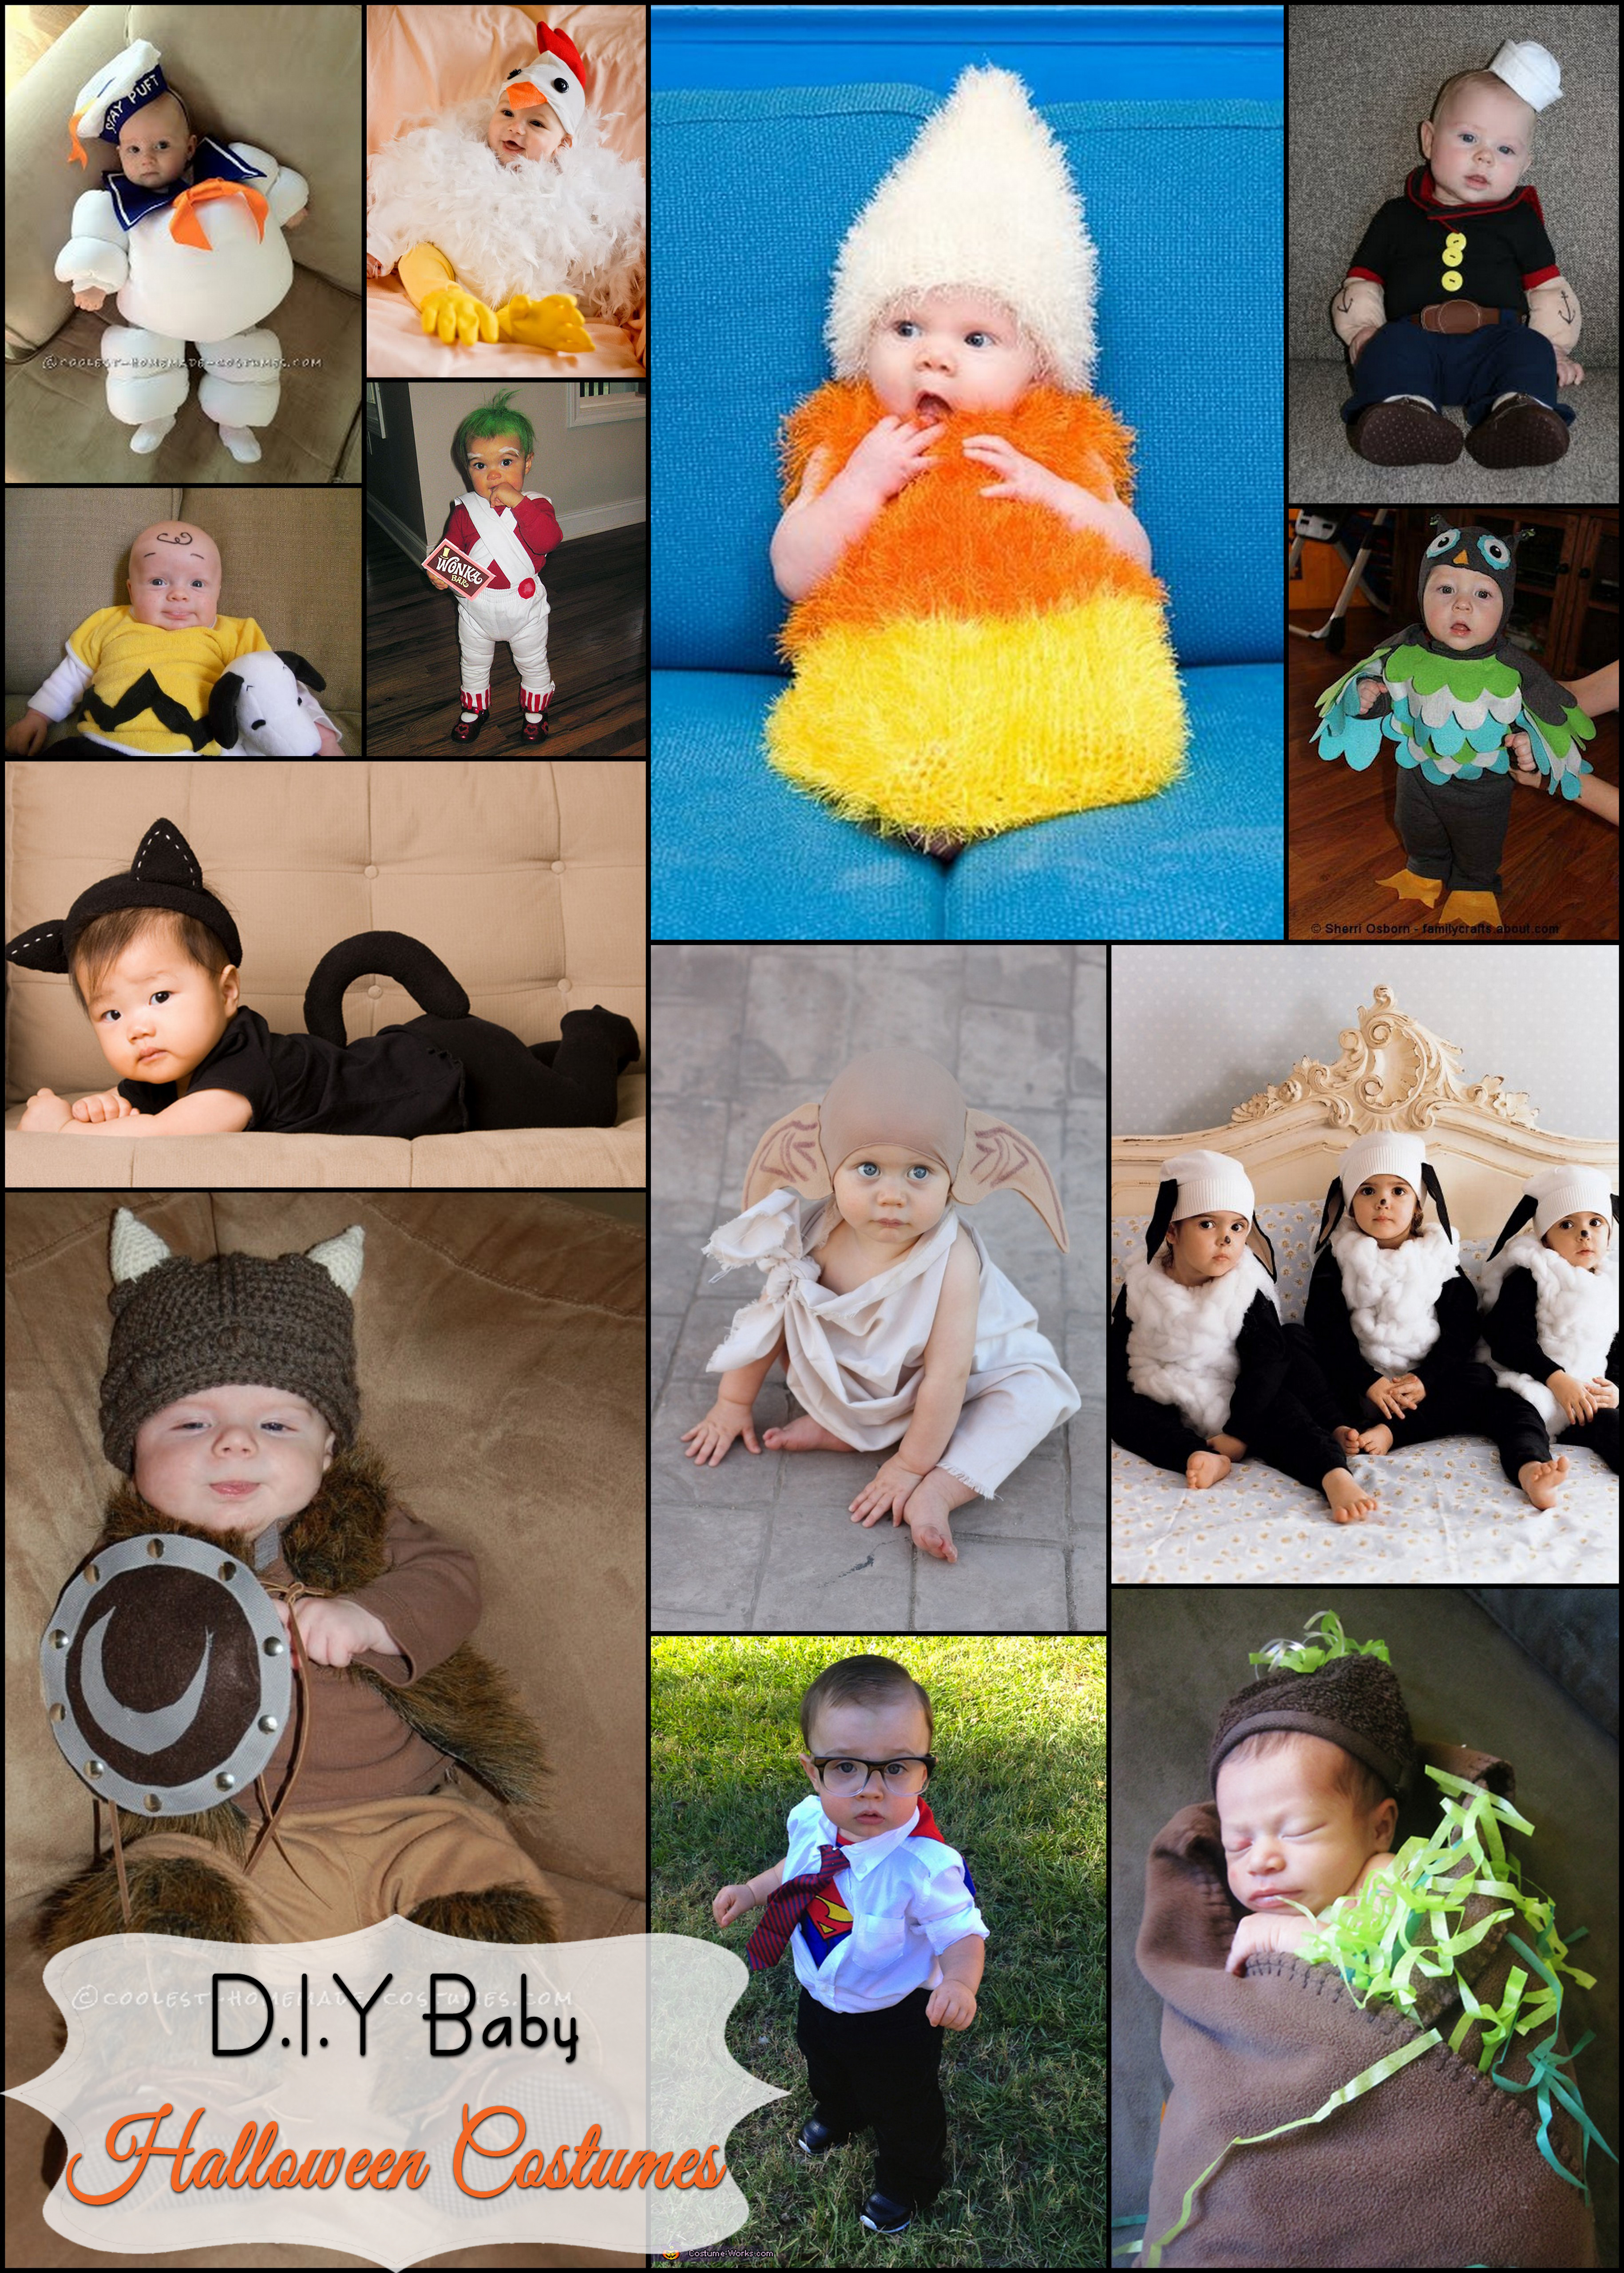 Best ideas about Baby Costume DIY . Save or Pin D I Y Baby Halloween Costumes Now.